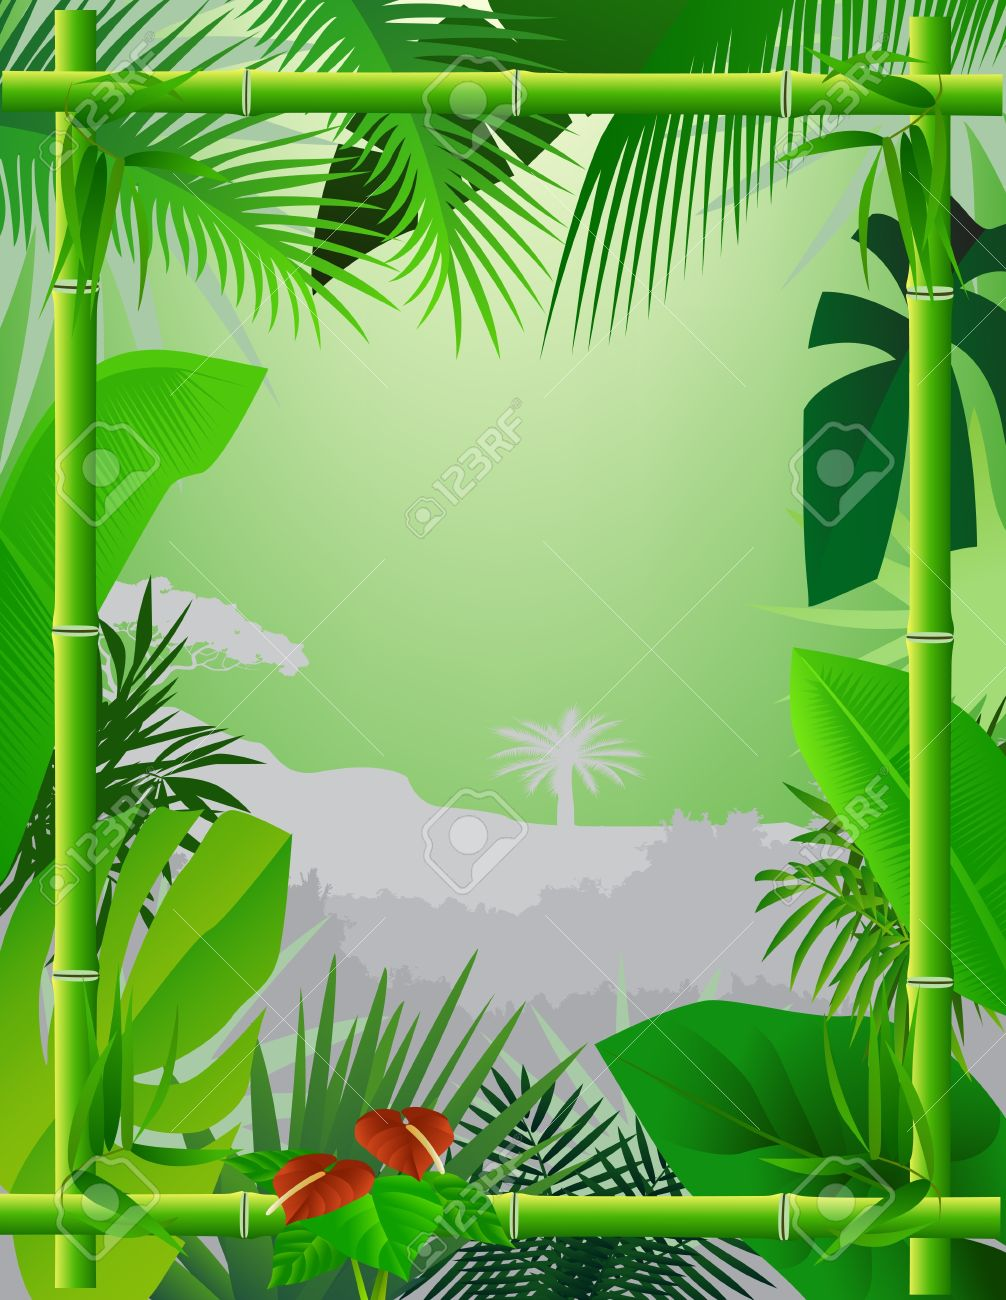 Tropical Background with Bamboo Frame Stock Vector - 12832963